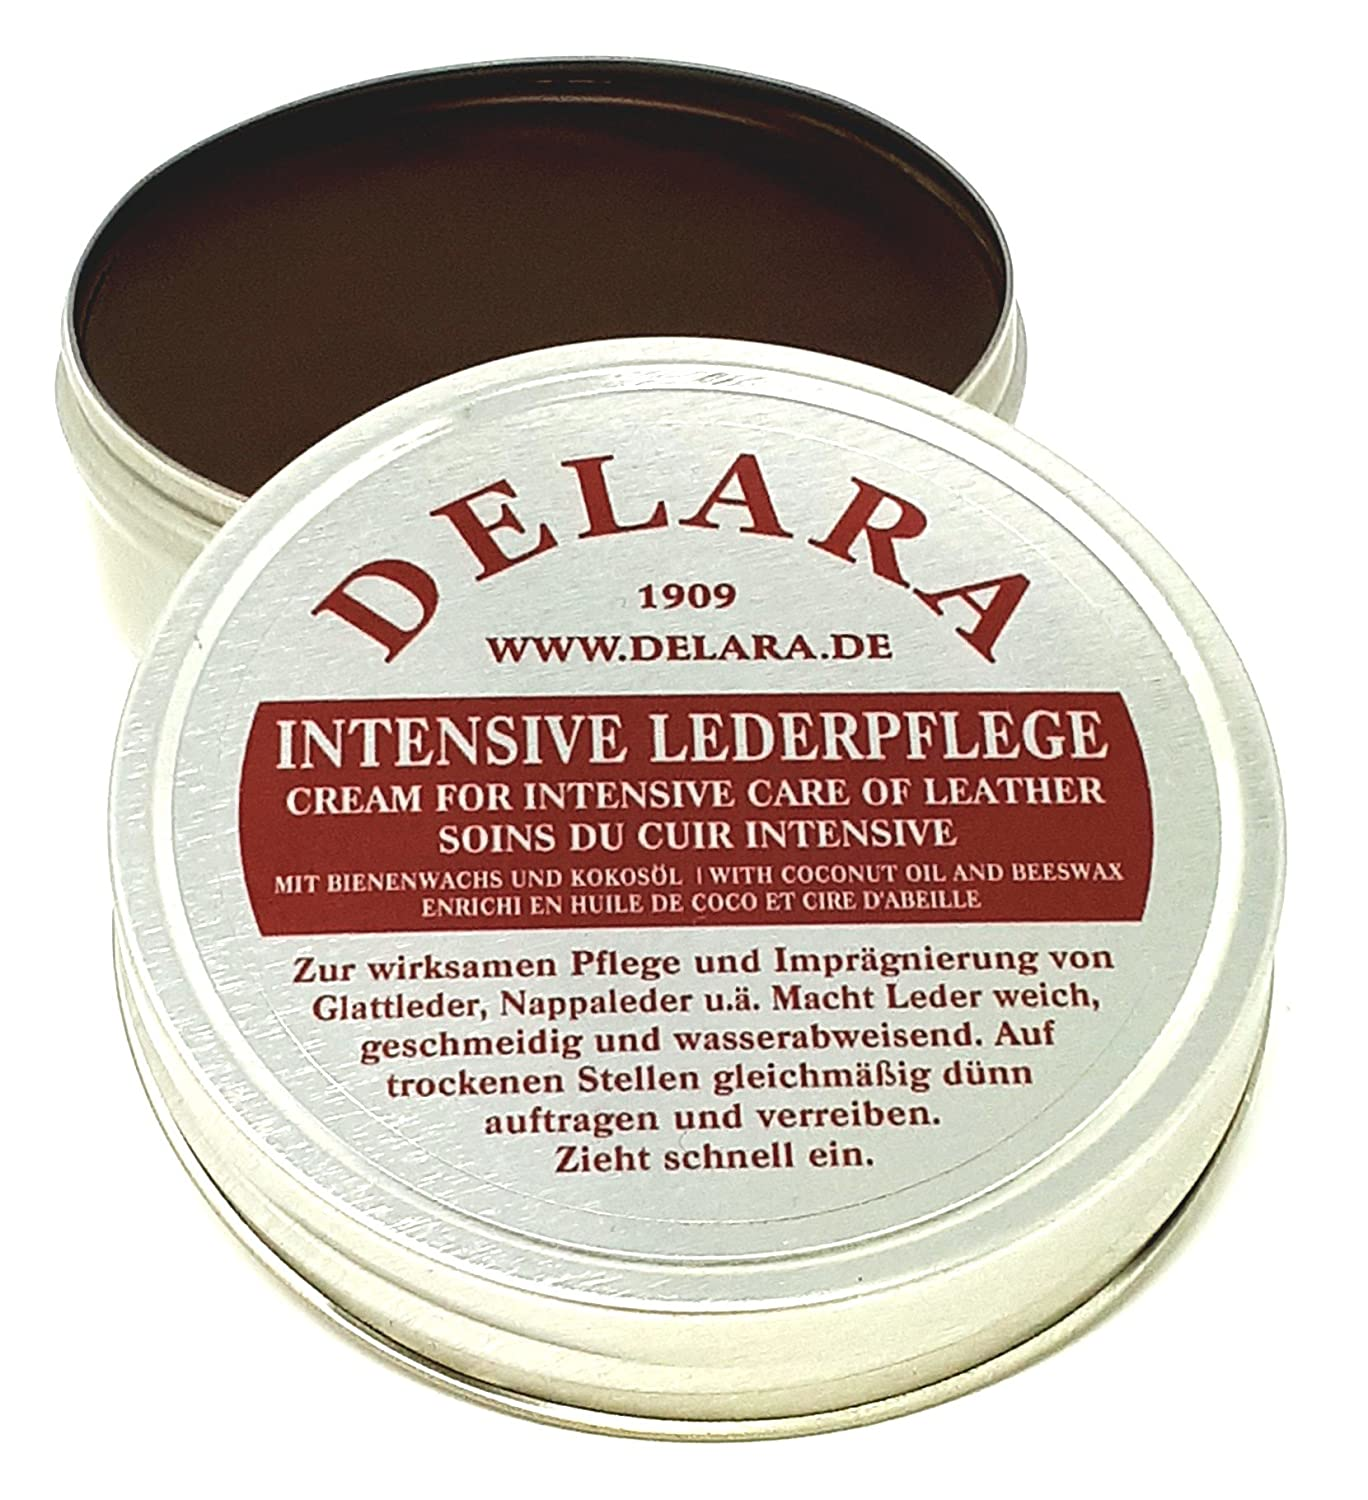 DELARA Intensive leather care – brown, 75 ml – Impregnates and protects leather very effectively, new formula coconut oil and beeswax 75 ml - Impregnates and protects leather very effectively 5301br